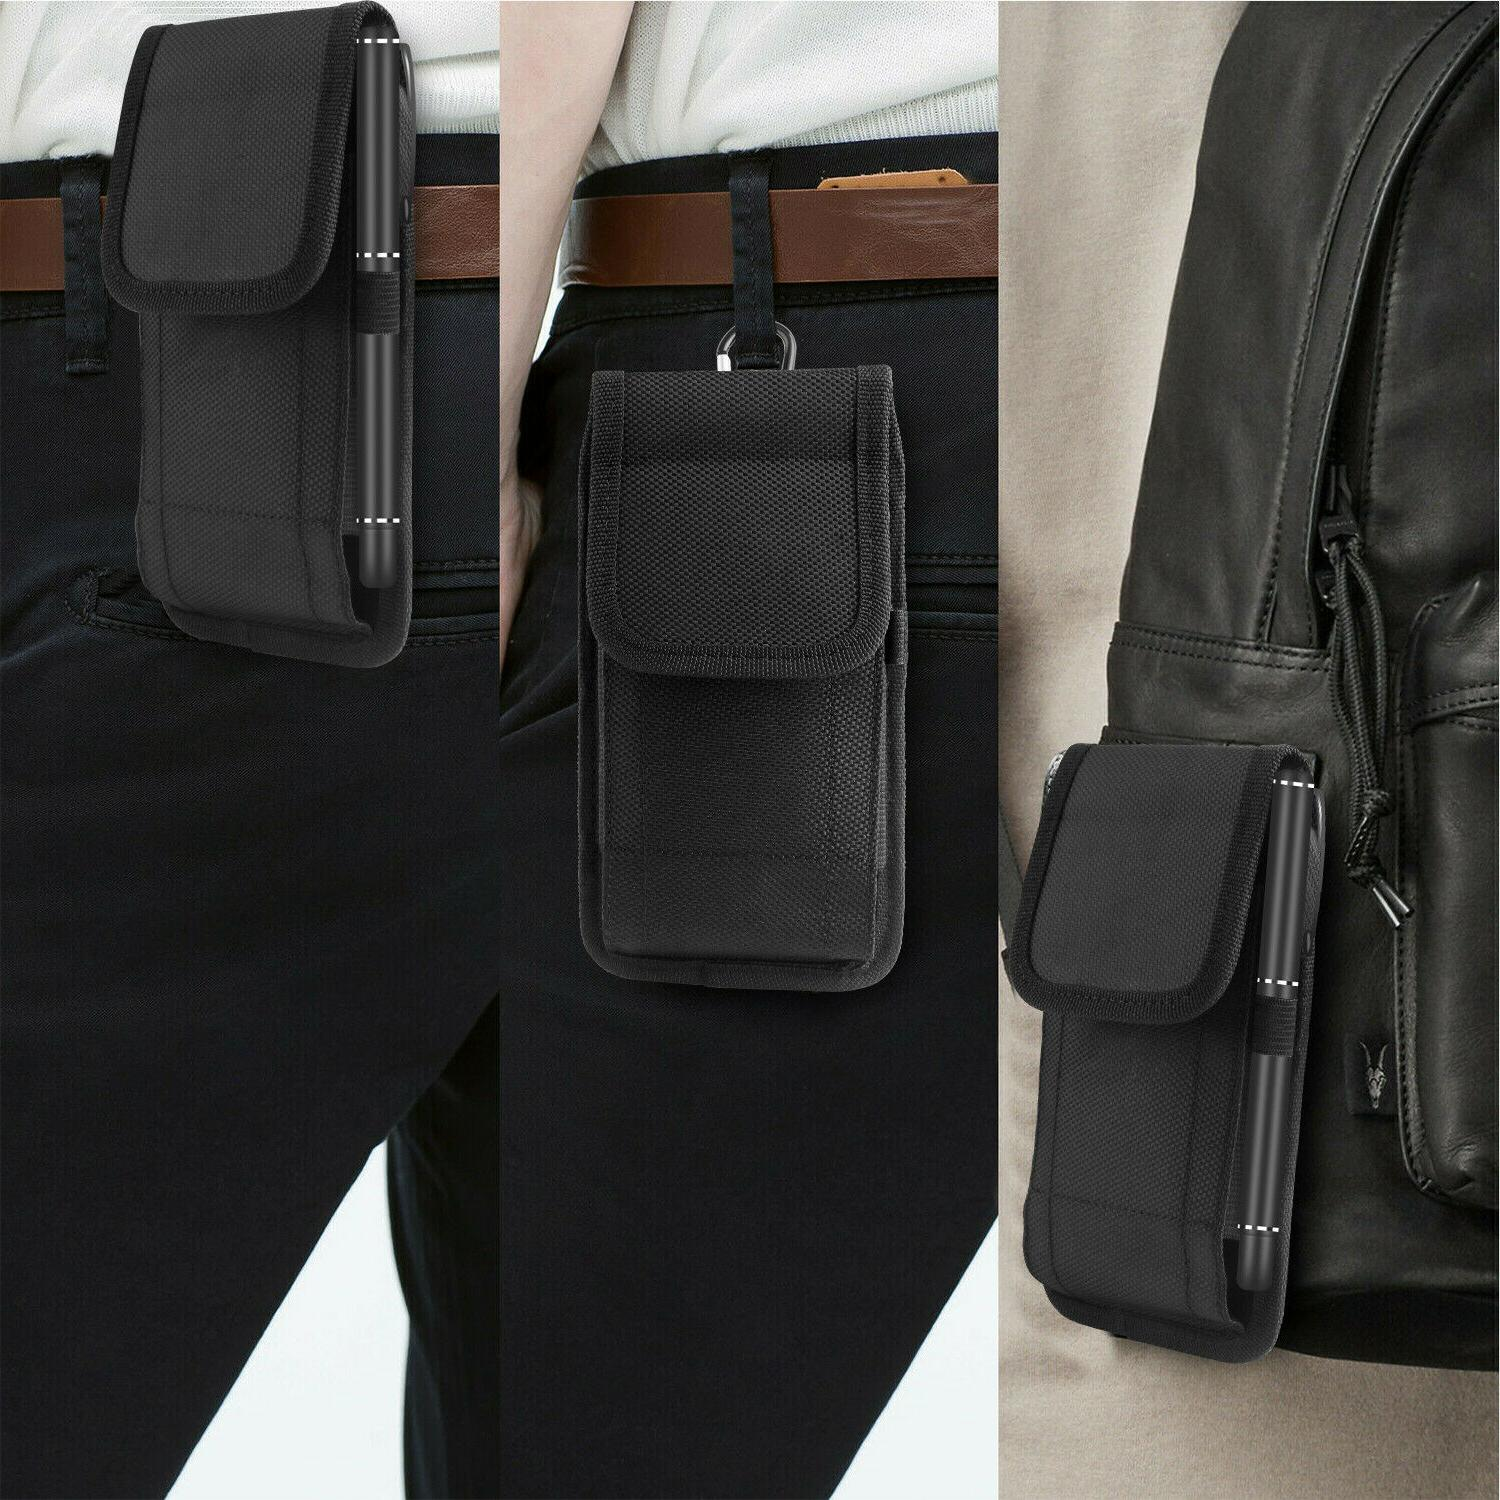 Vertical Holster Pouch Case Belt For iPhone Samsung